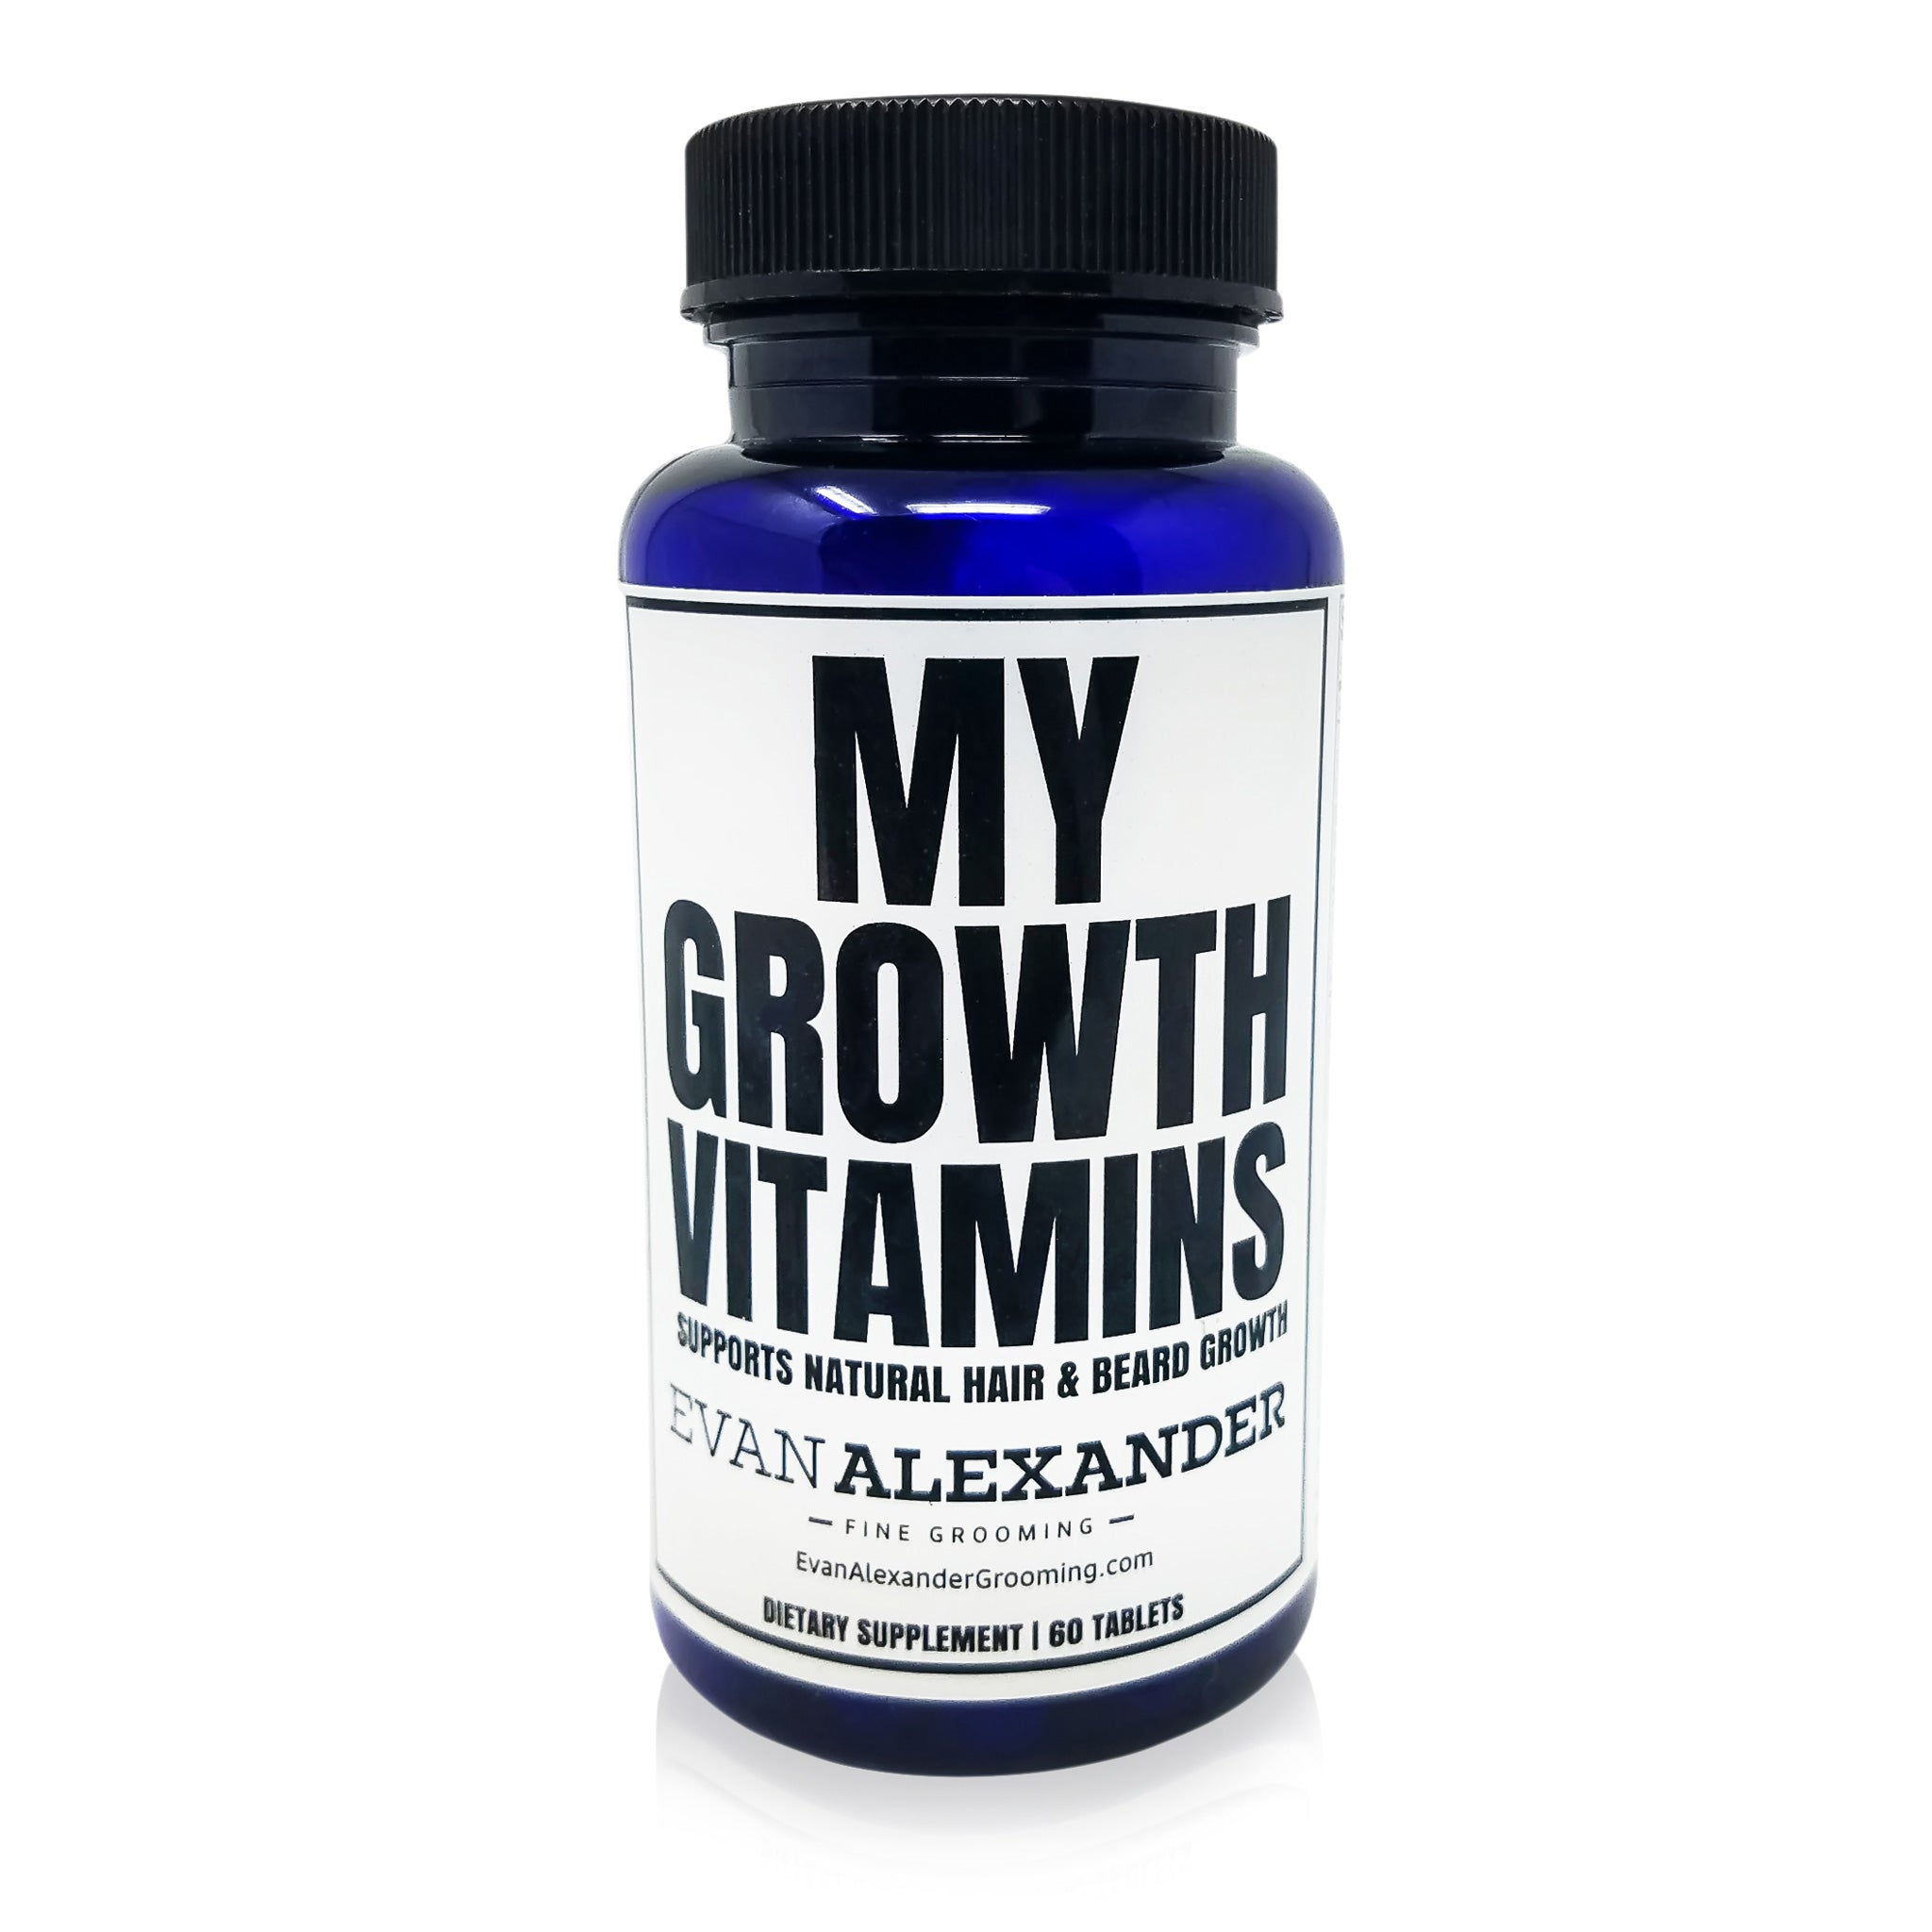 MY GROWTH VITAMINS